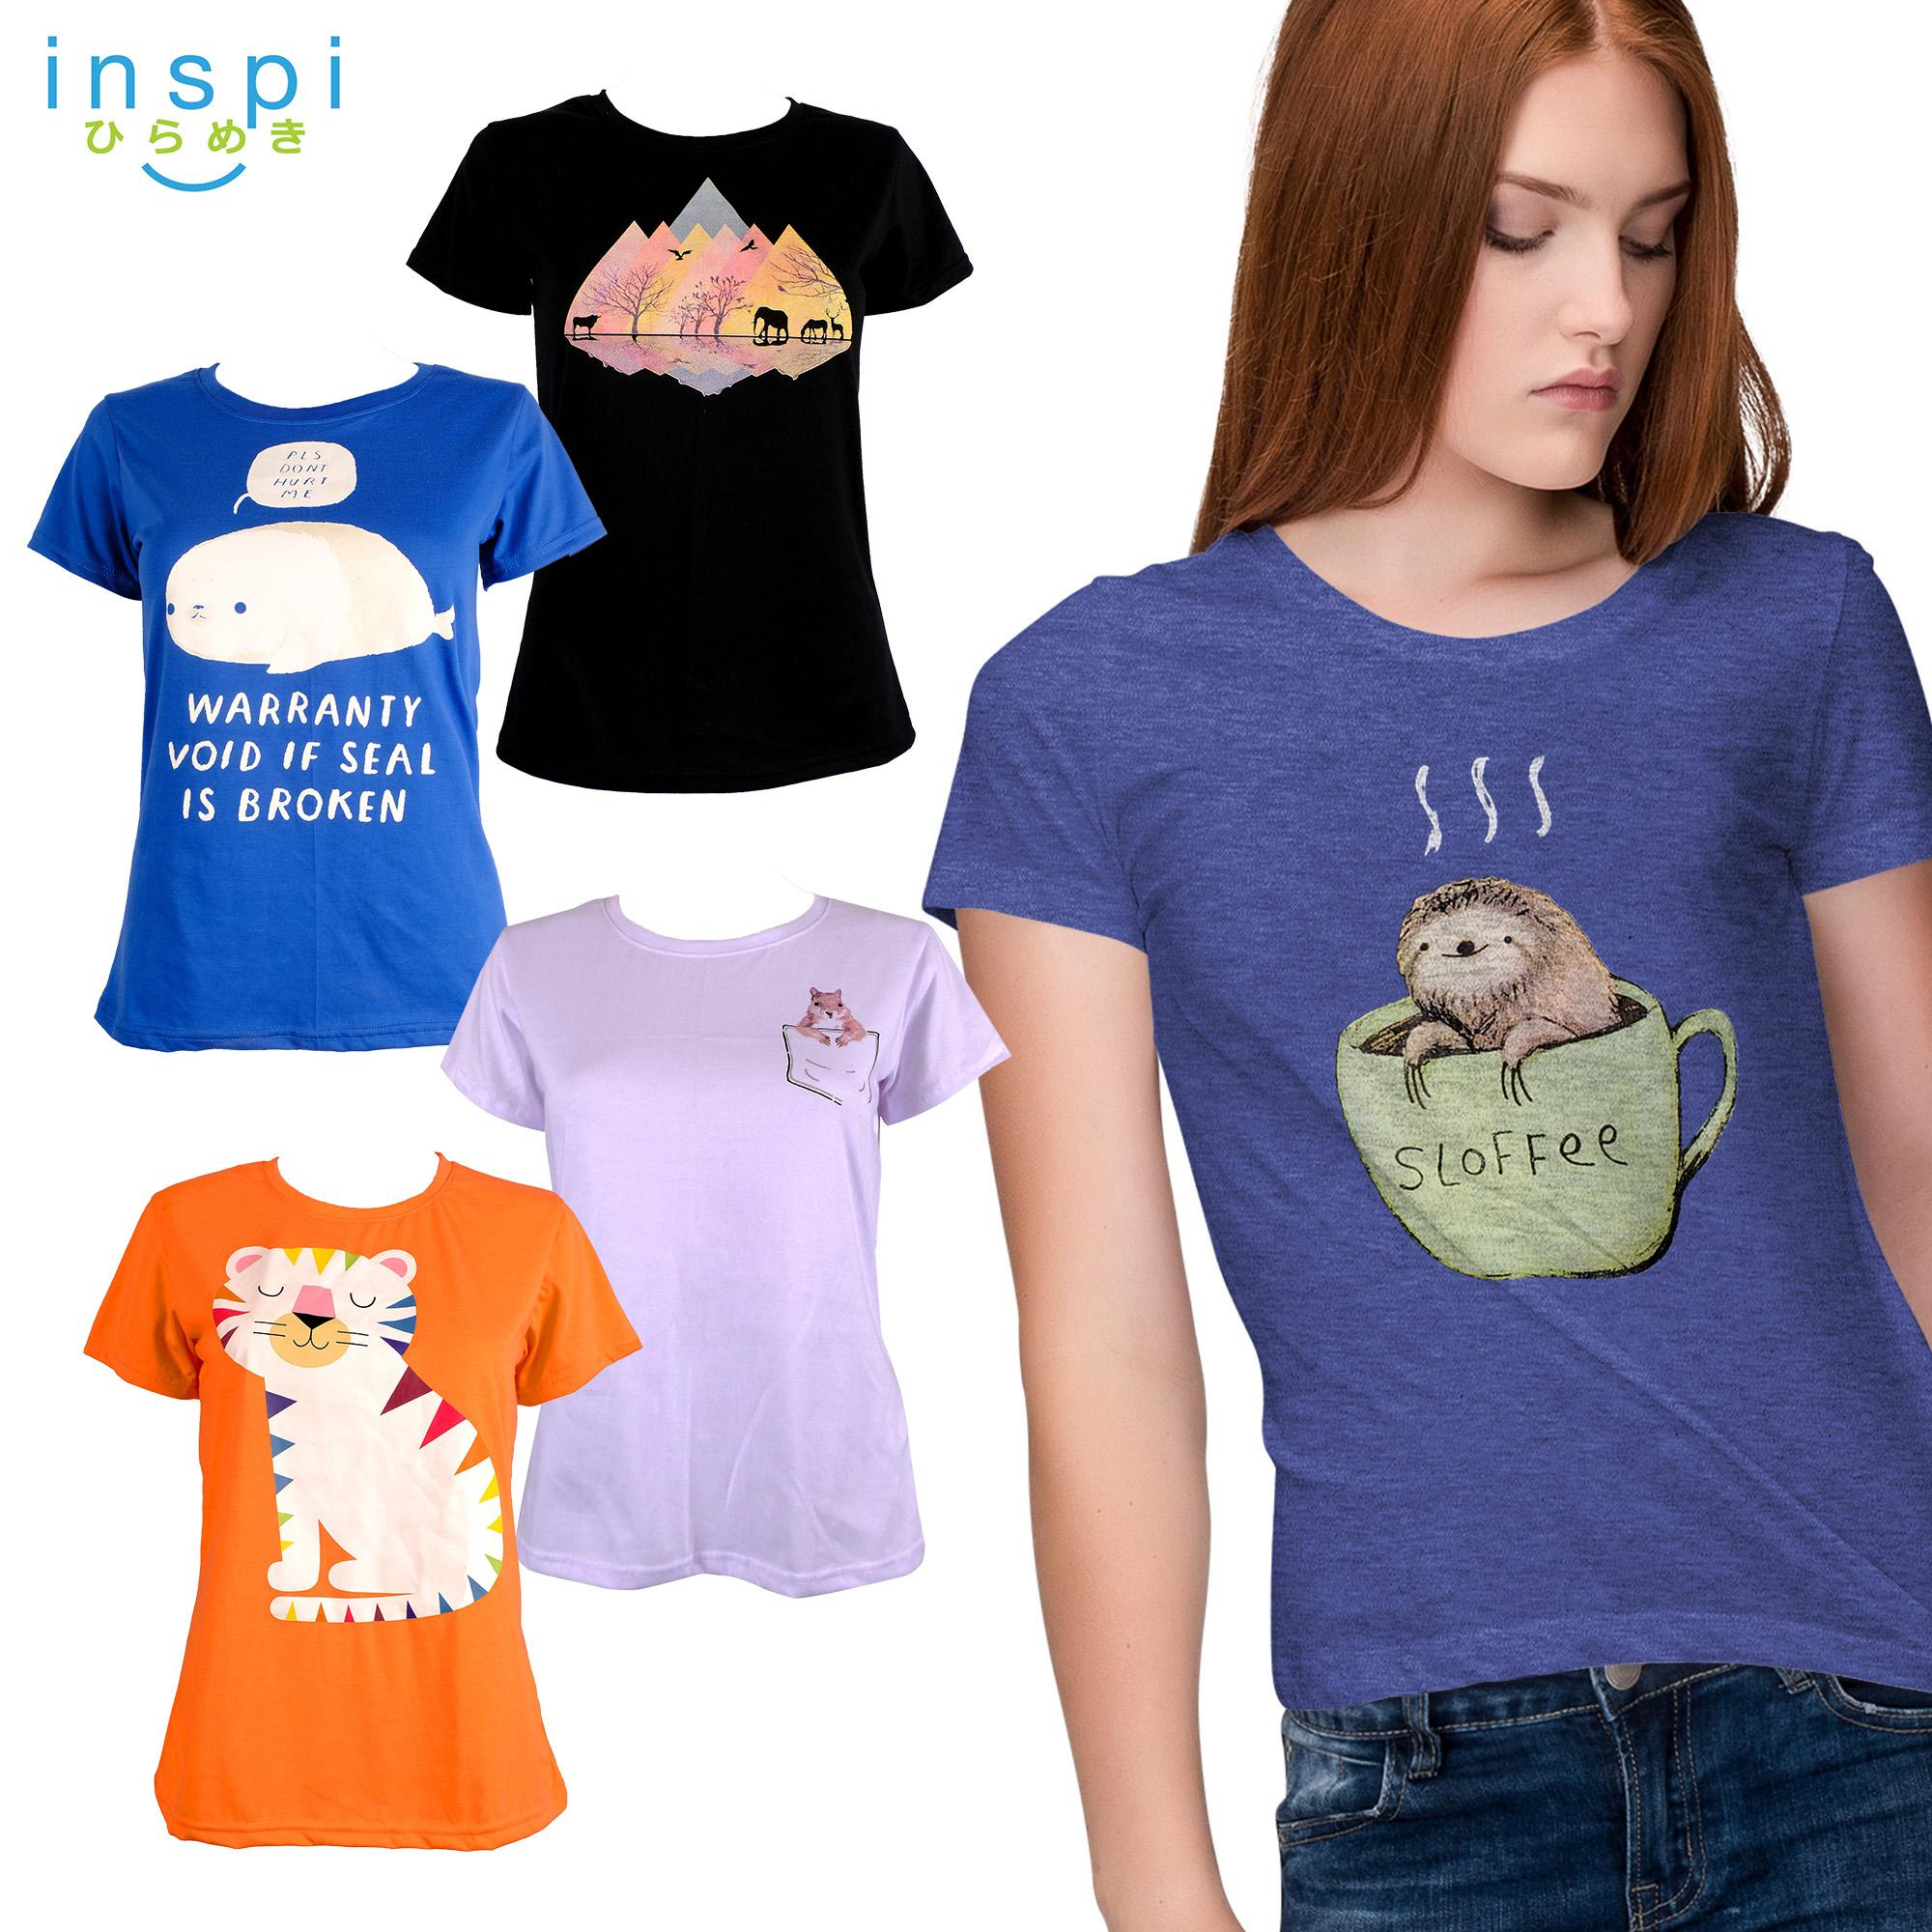 12a2fb4a1 INSPI Tees Ladies Pet Collection tshirt printed graphic tee Ladies t shirt  shirts women tshirts for